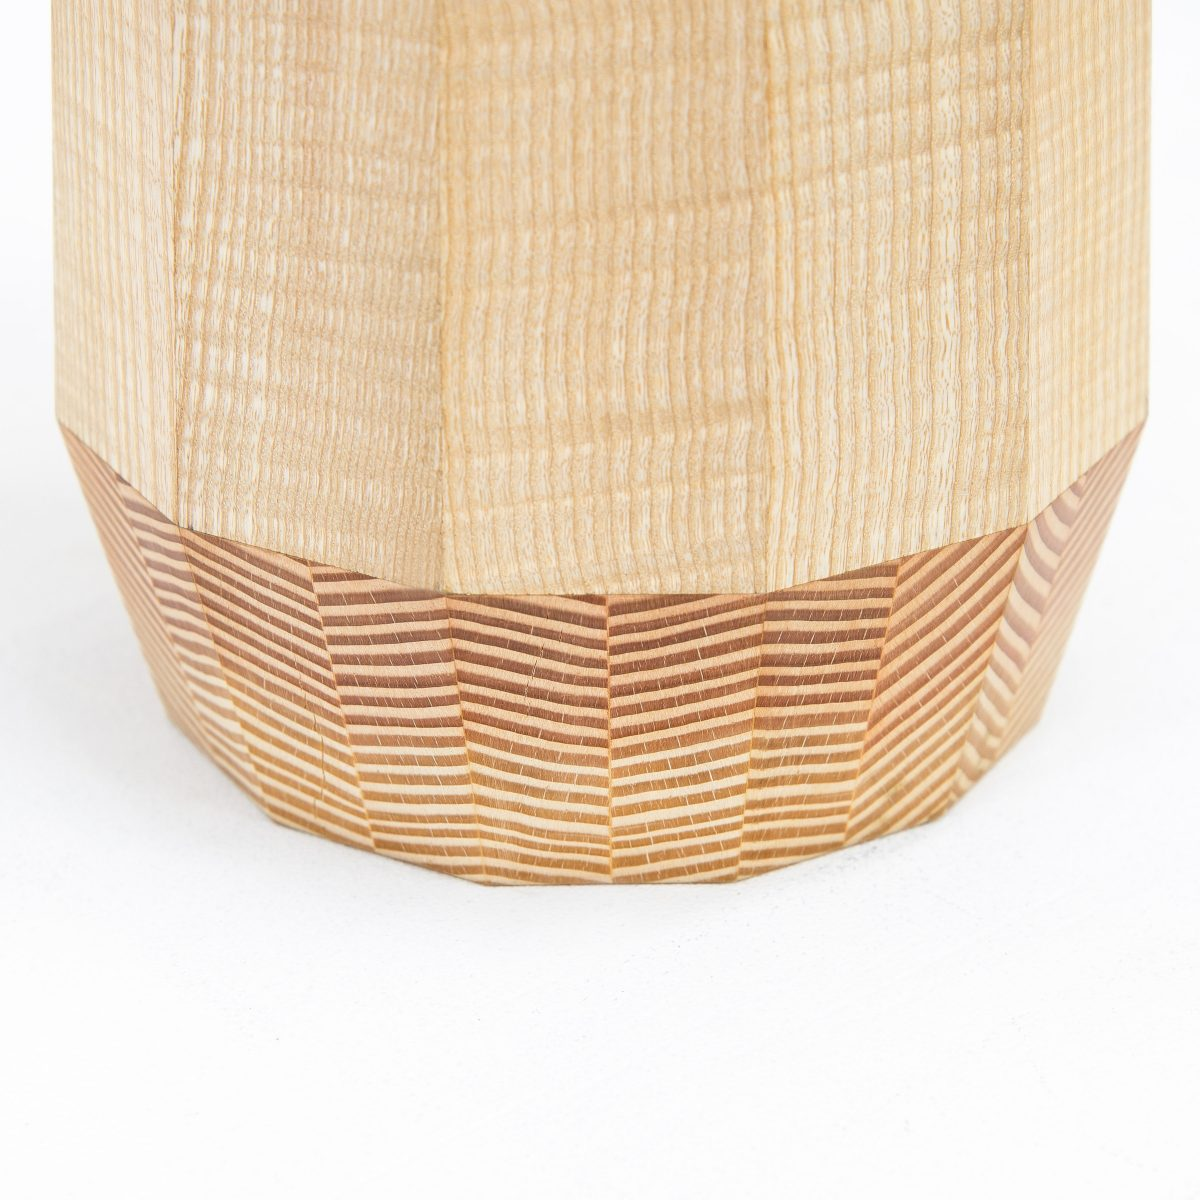 Jan Hendzel Studio rippled fir-3